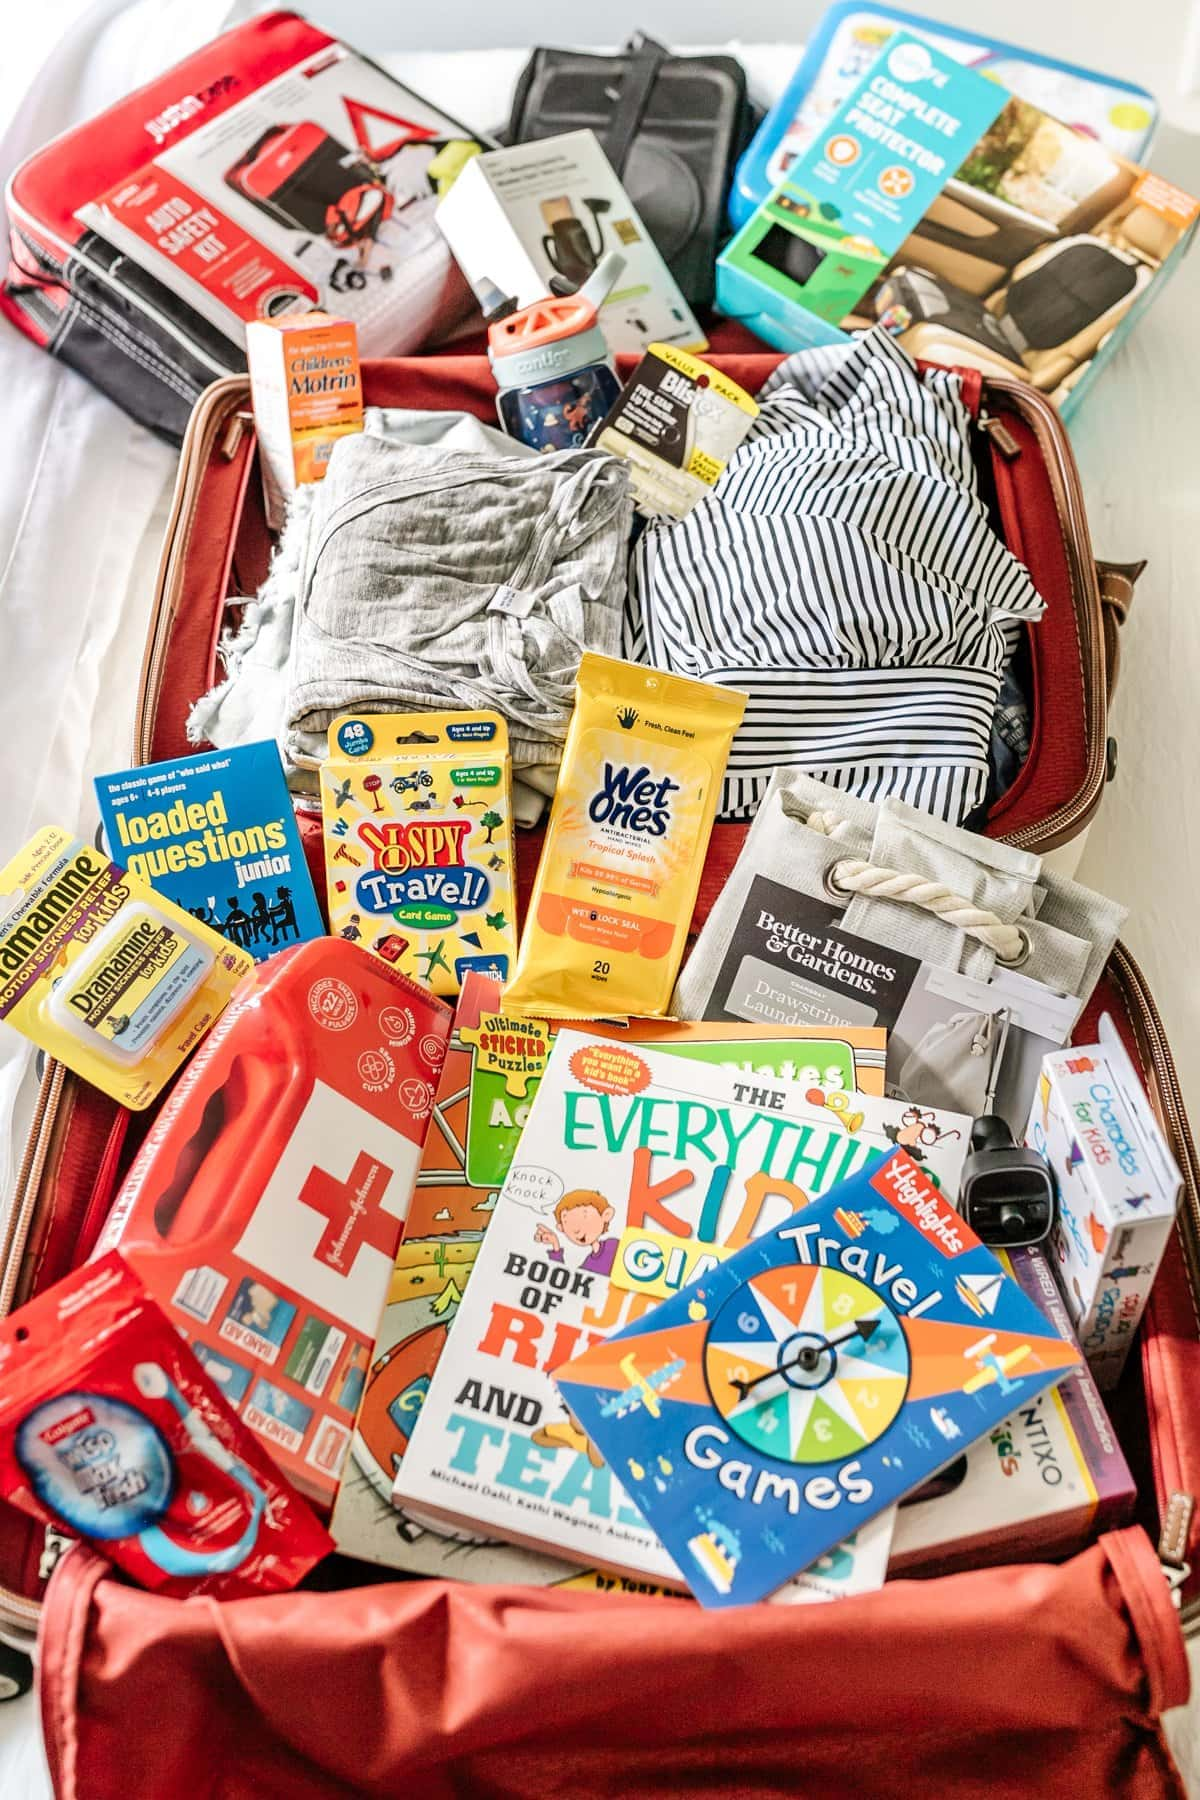 suitcase packed with travel essentials like travel games, first aid kit, wet wipes, Dramamine, and car organizers